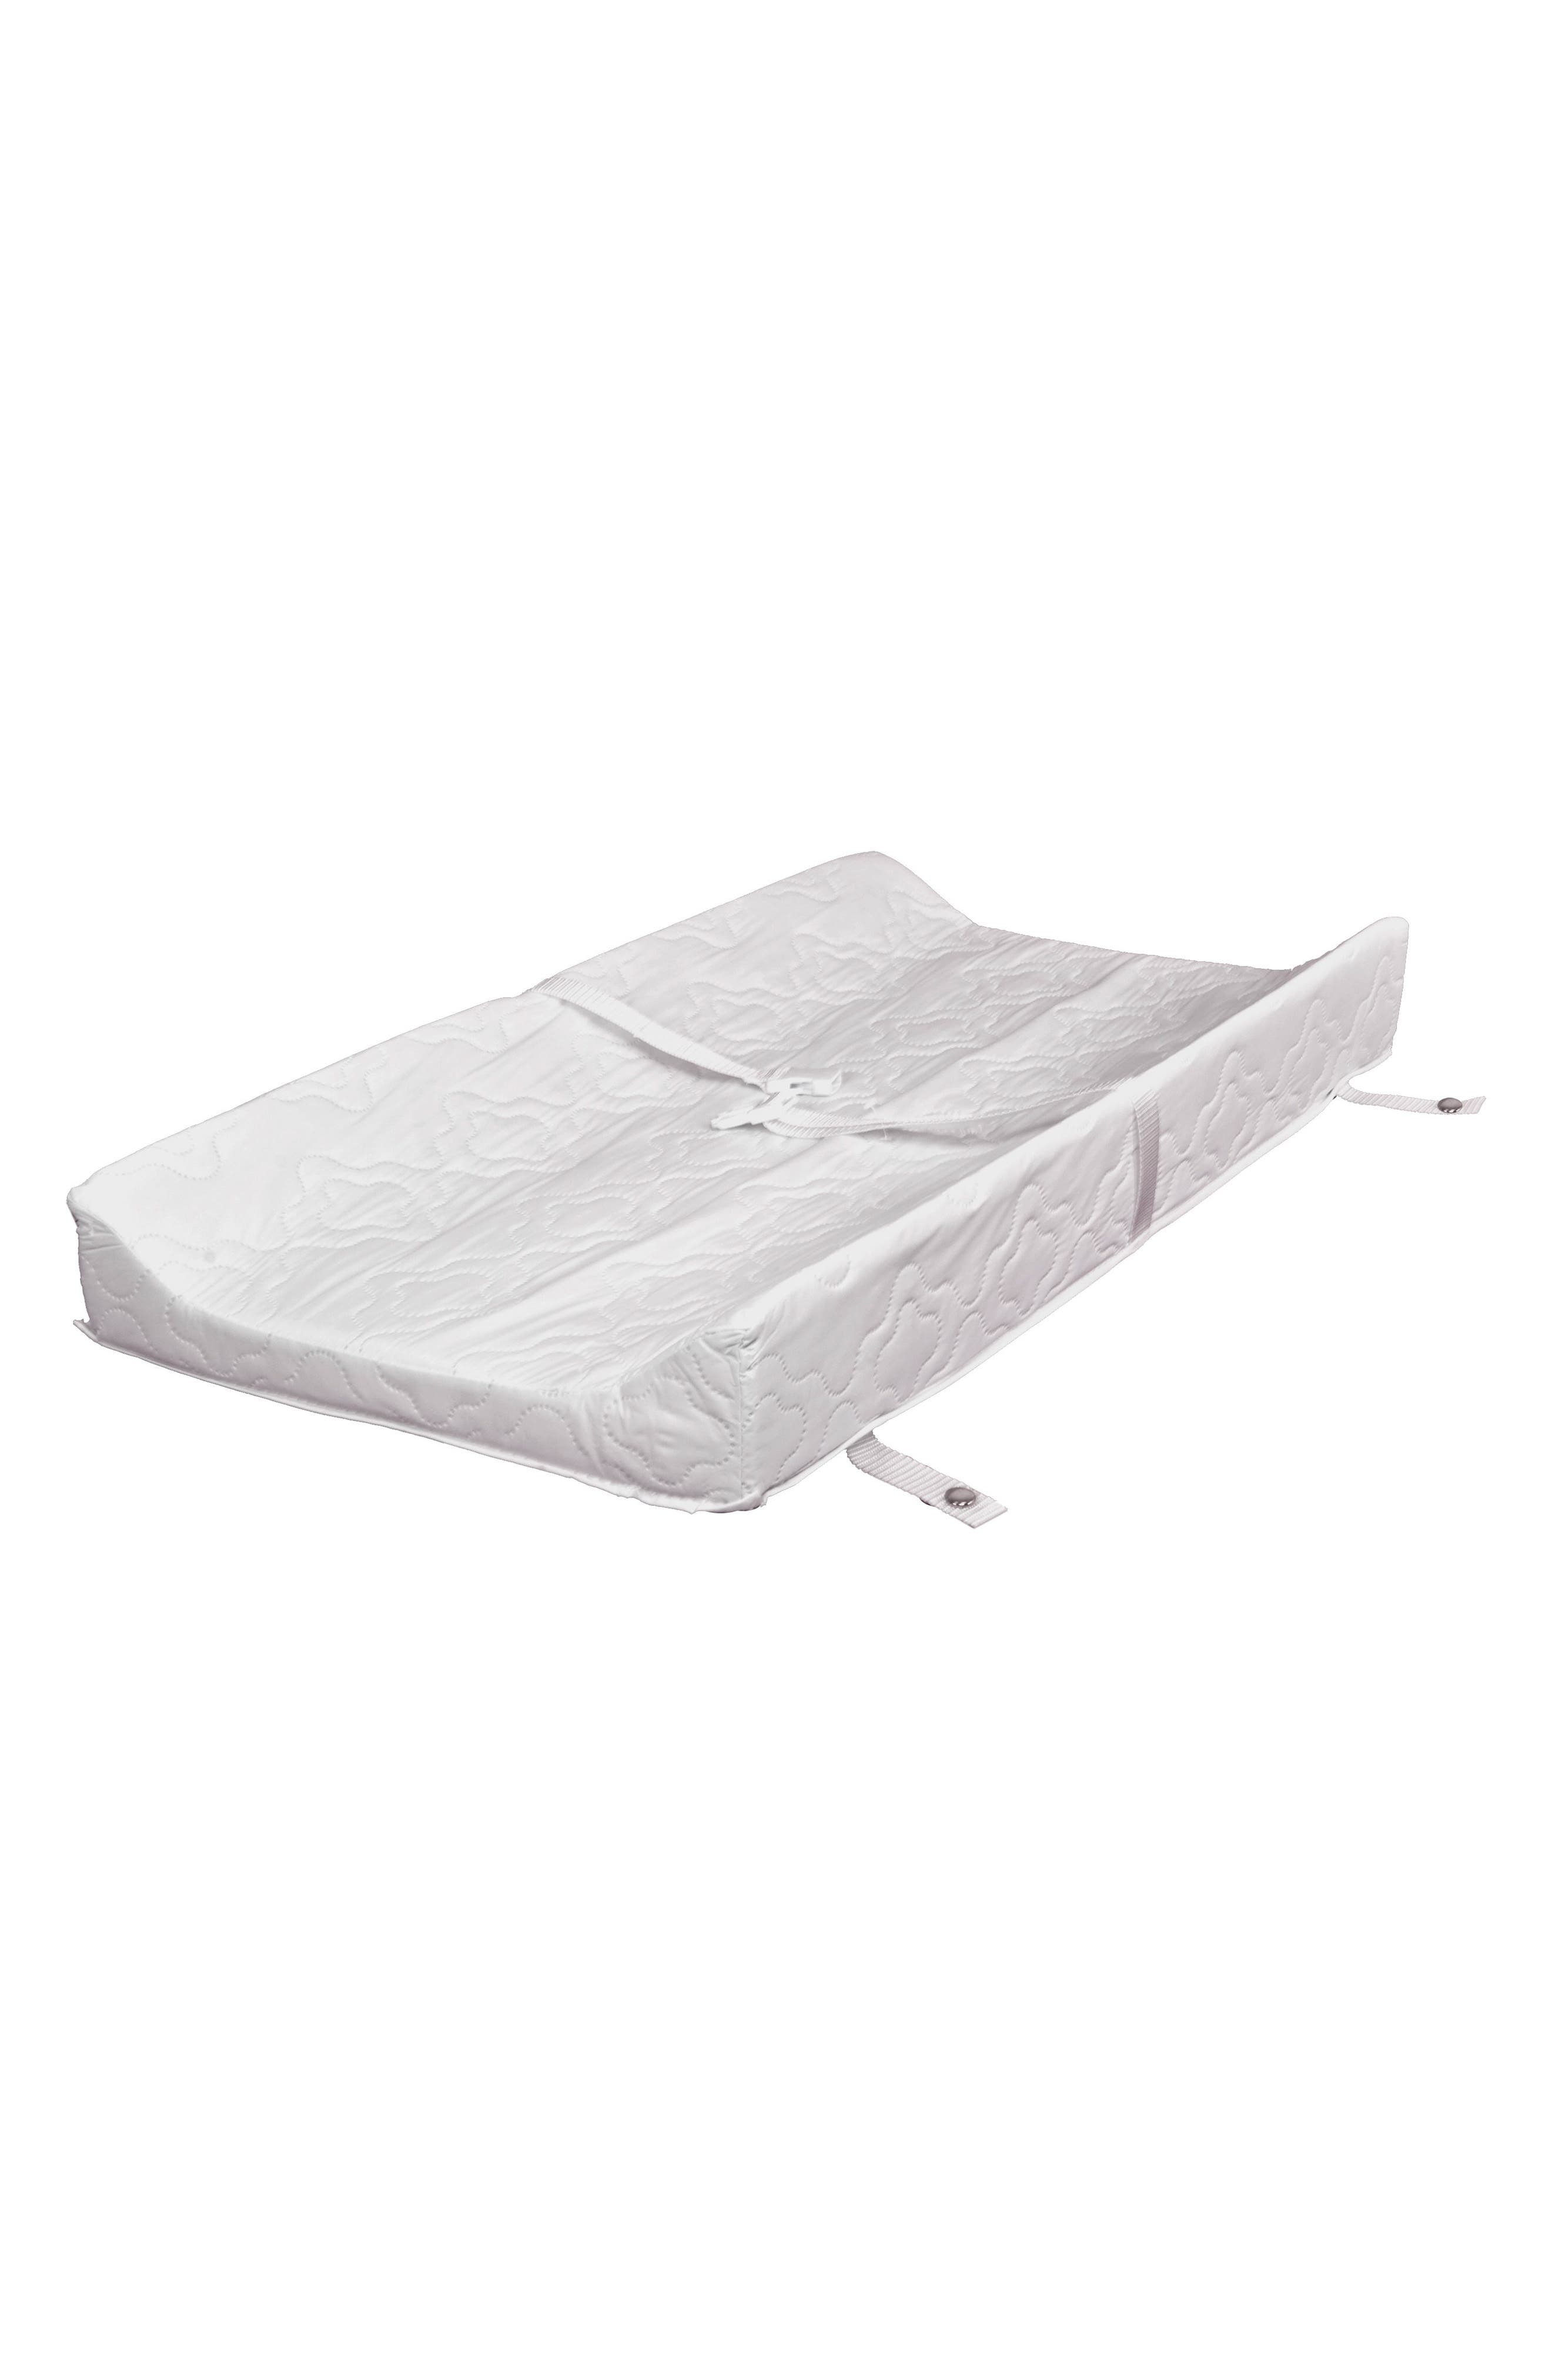 Main Image - babyletto Waterproof Contoured Changing Pad for babyletto Changers/Dressers